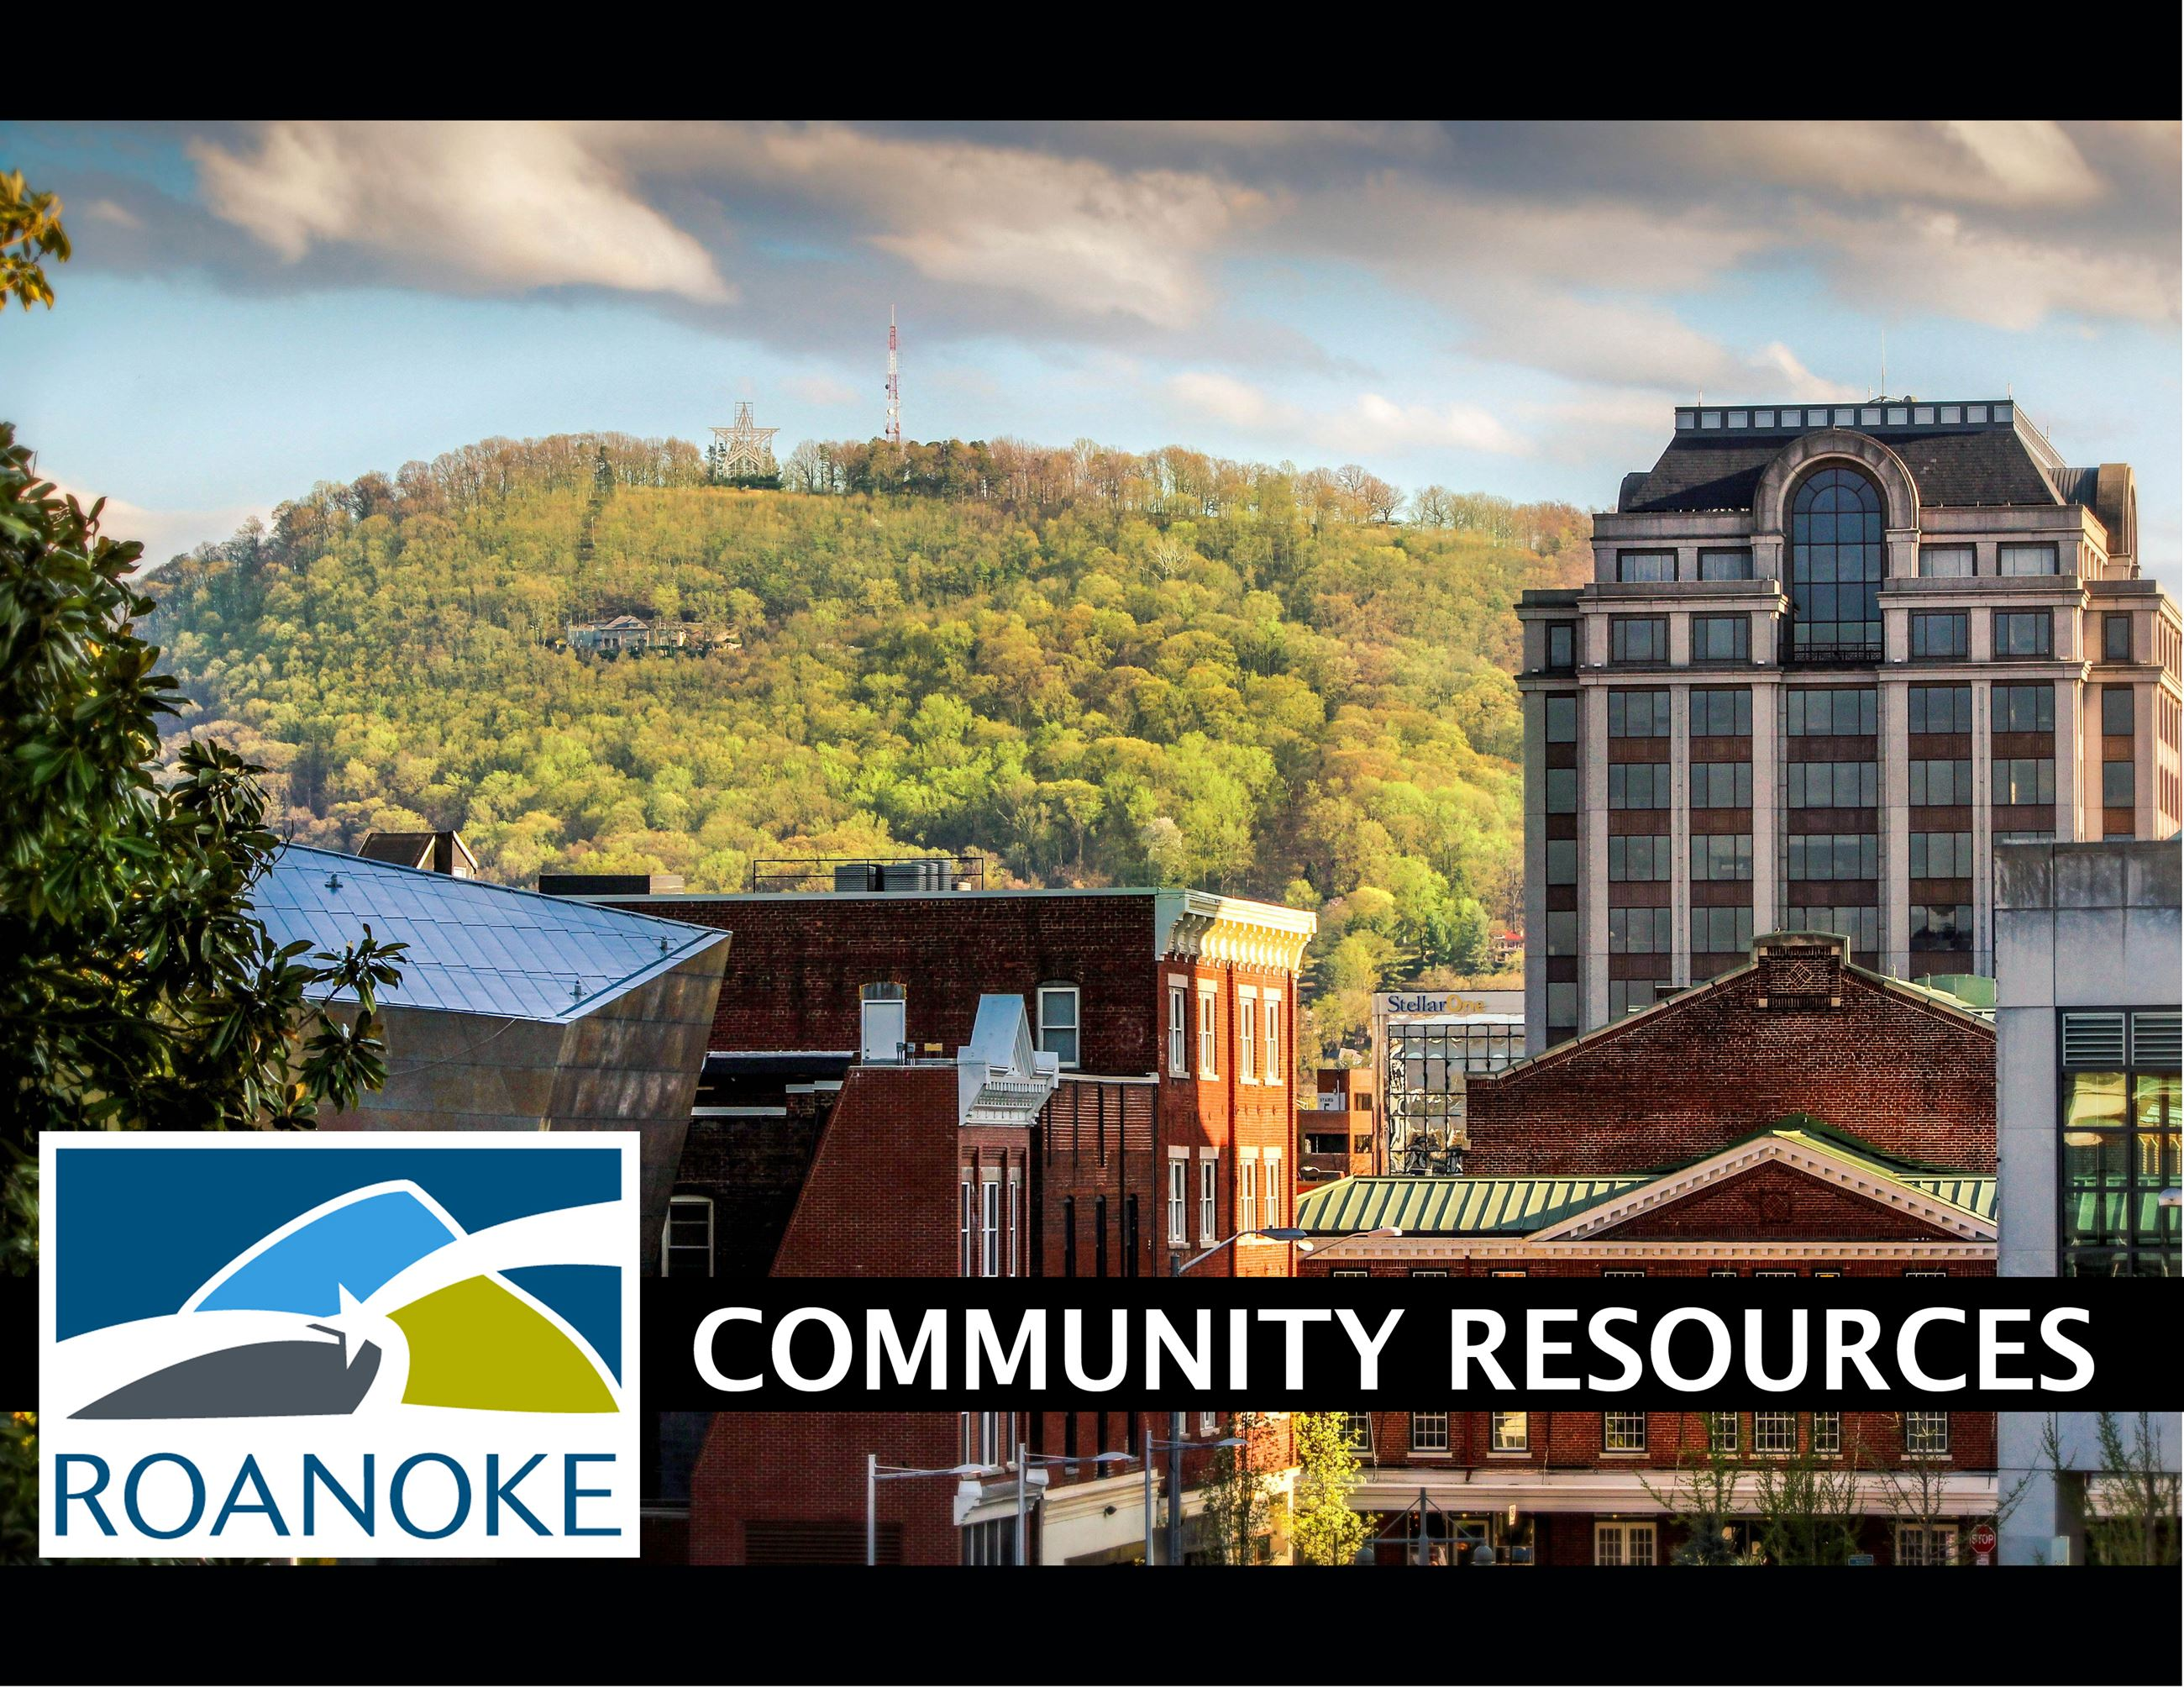 Photo of Mill Mountain City of Roanoke Community Resources graphic